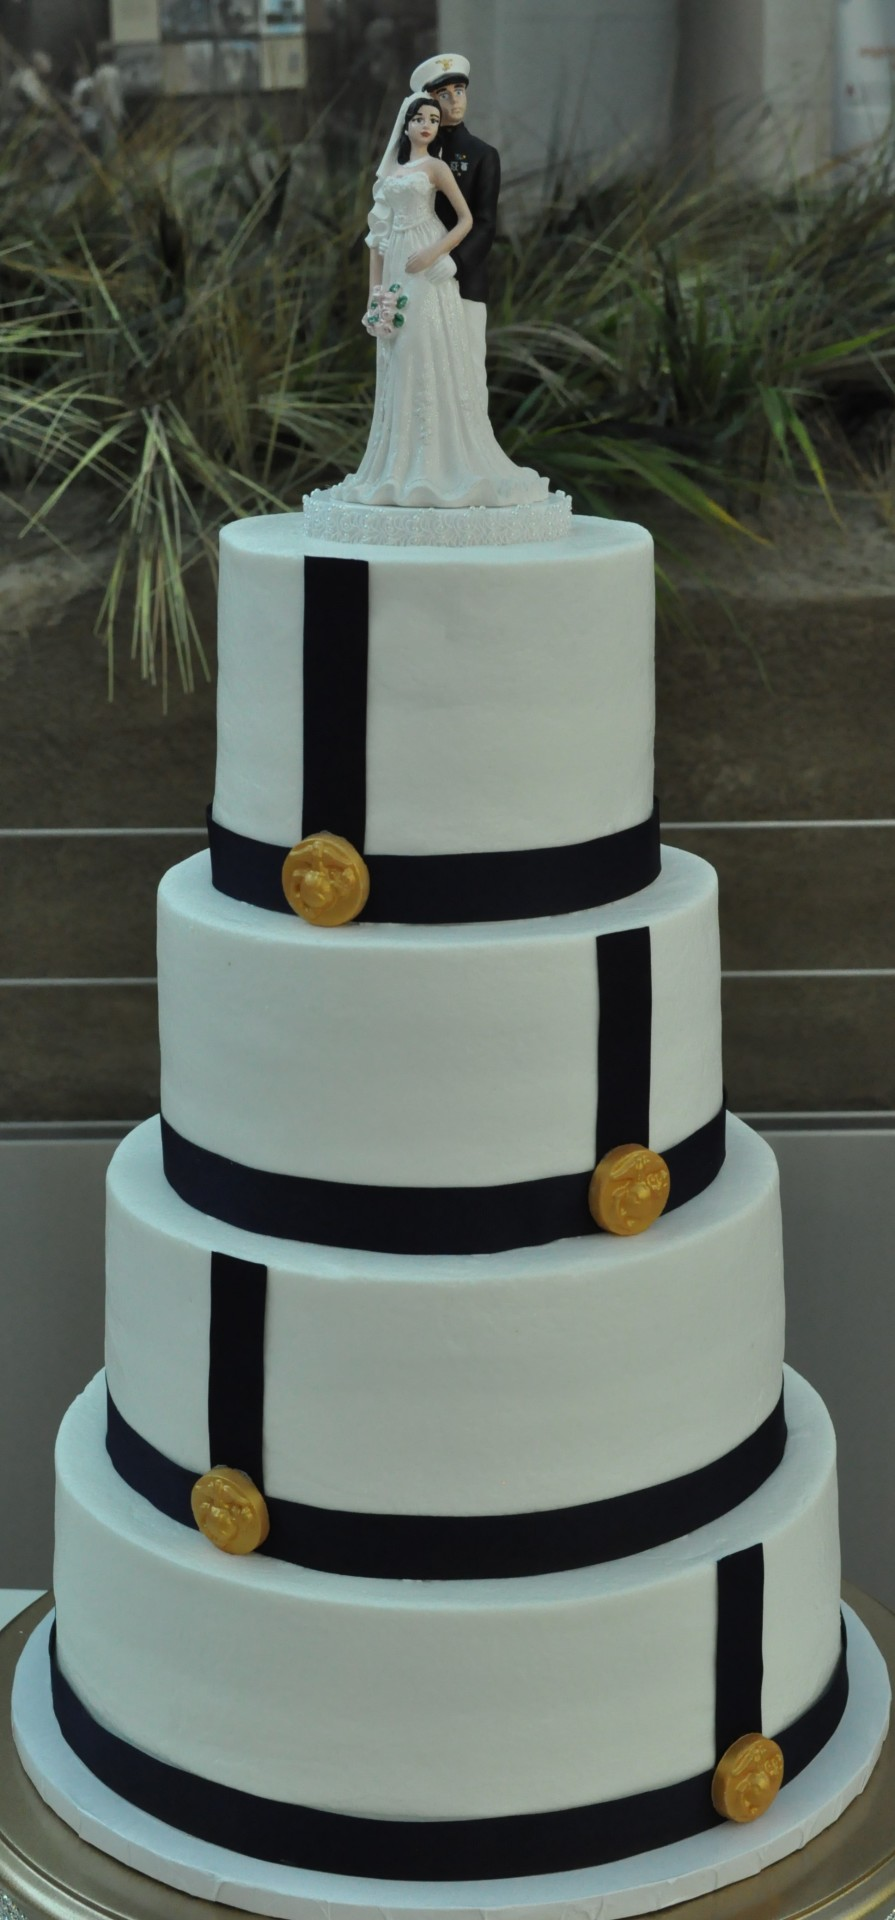 Simple elegance for a marine couple!